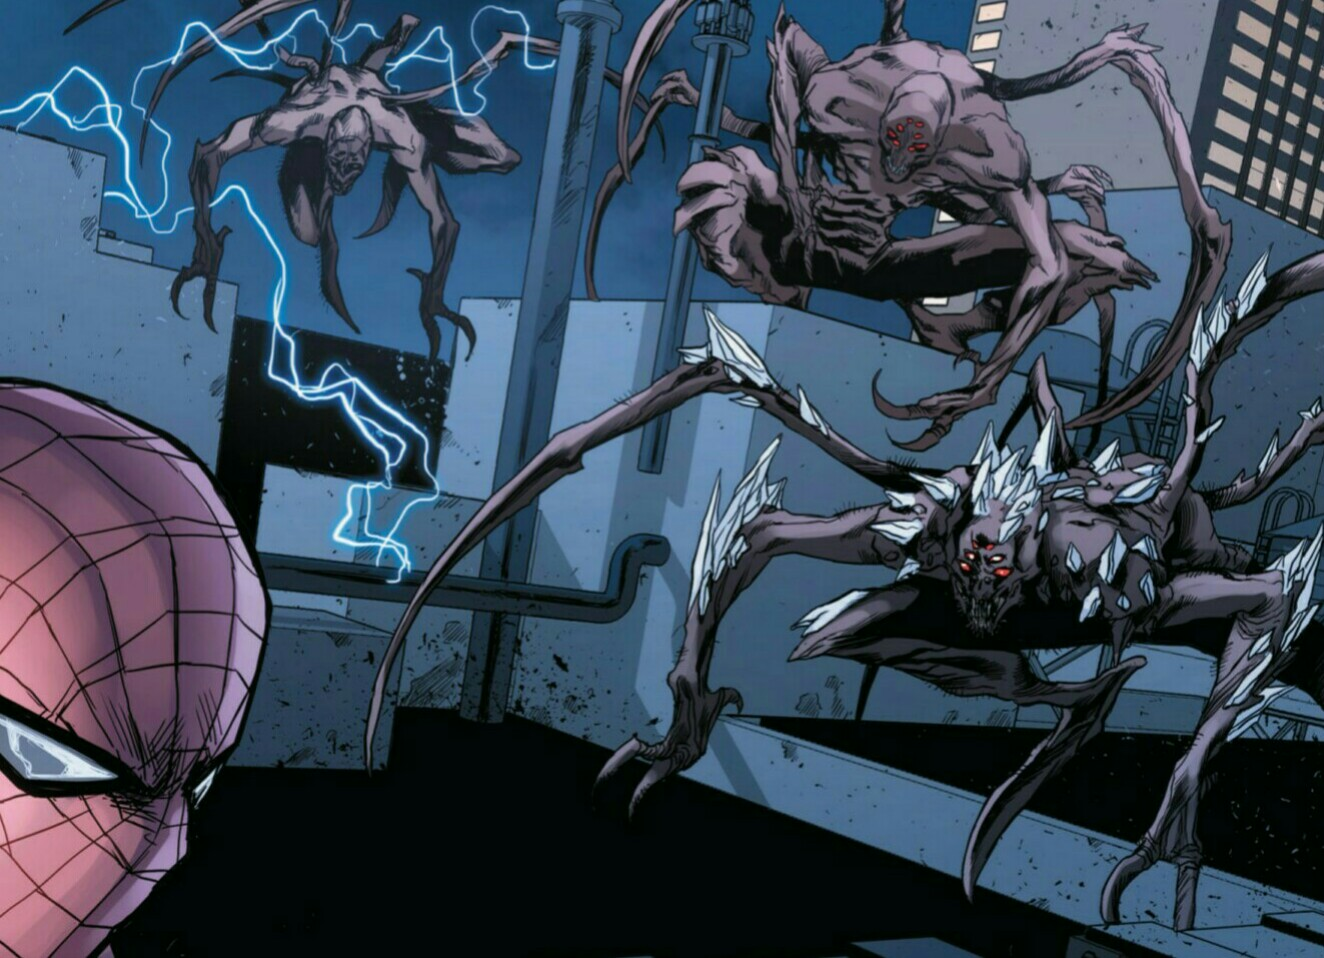 Mutant-Powered Spider-Clones (Earth-616)/Gallery